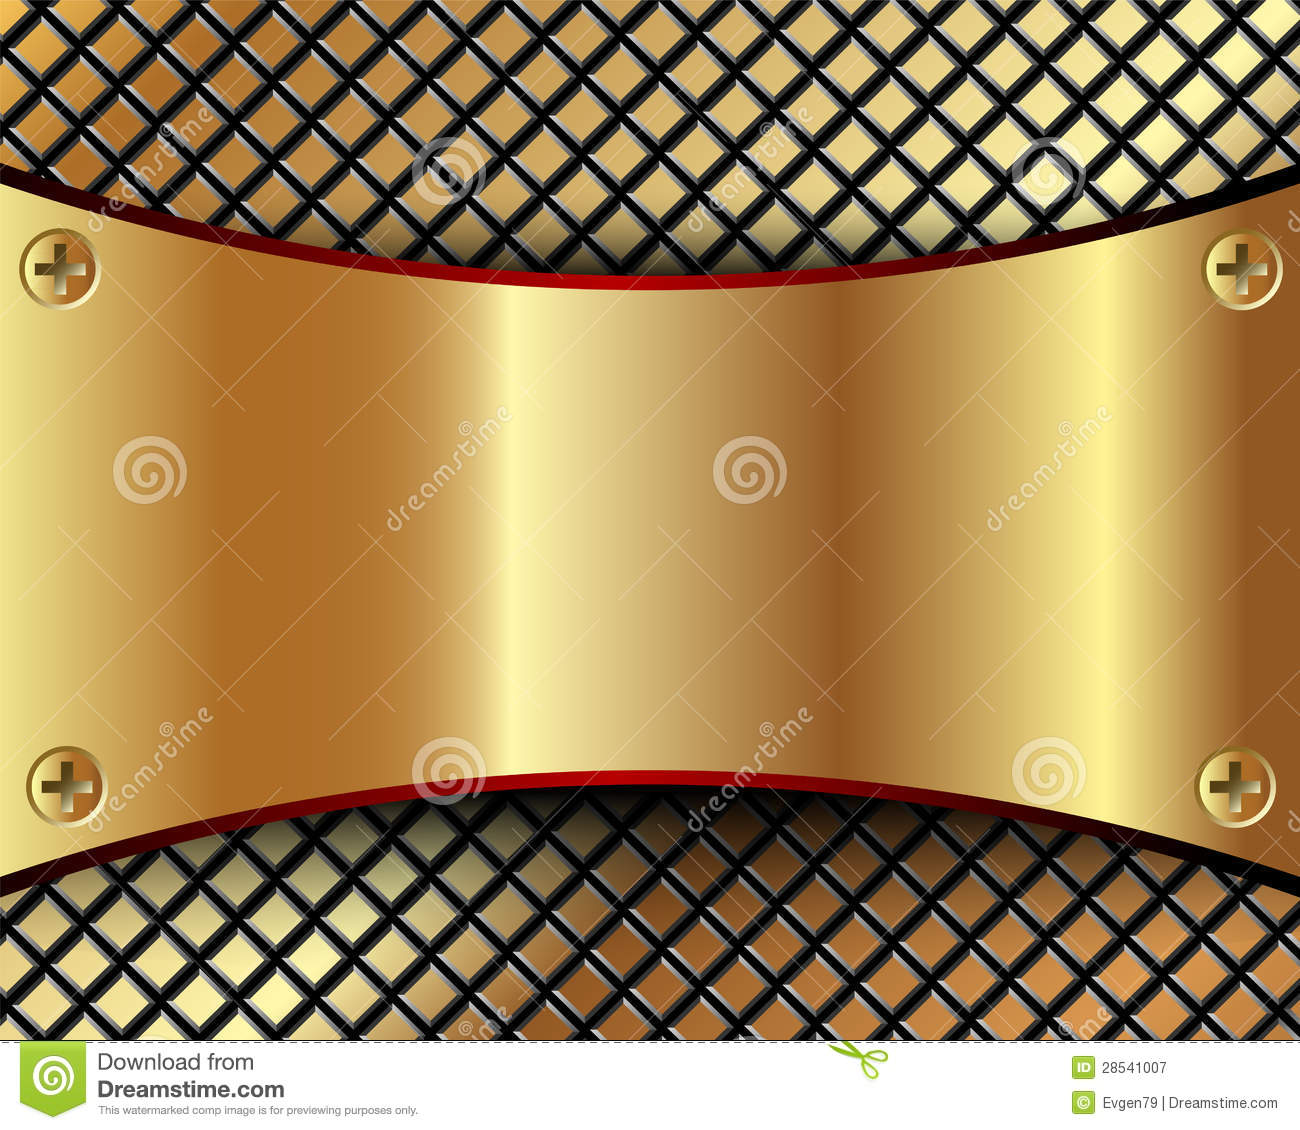 background with a metallic gold plate and grid stock